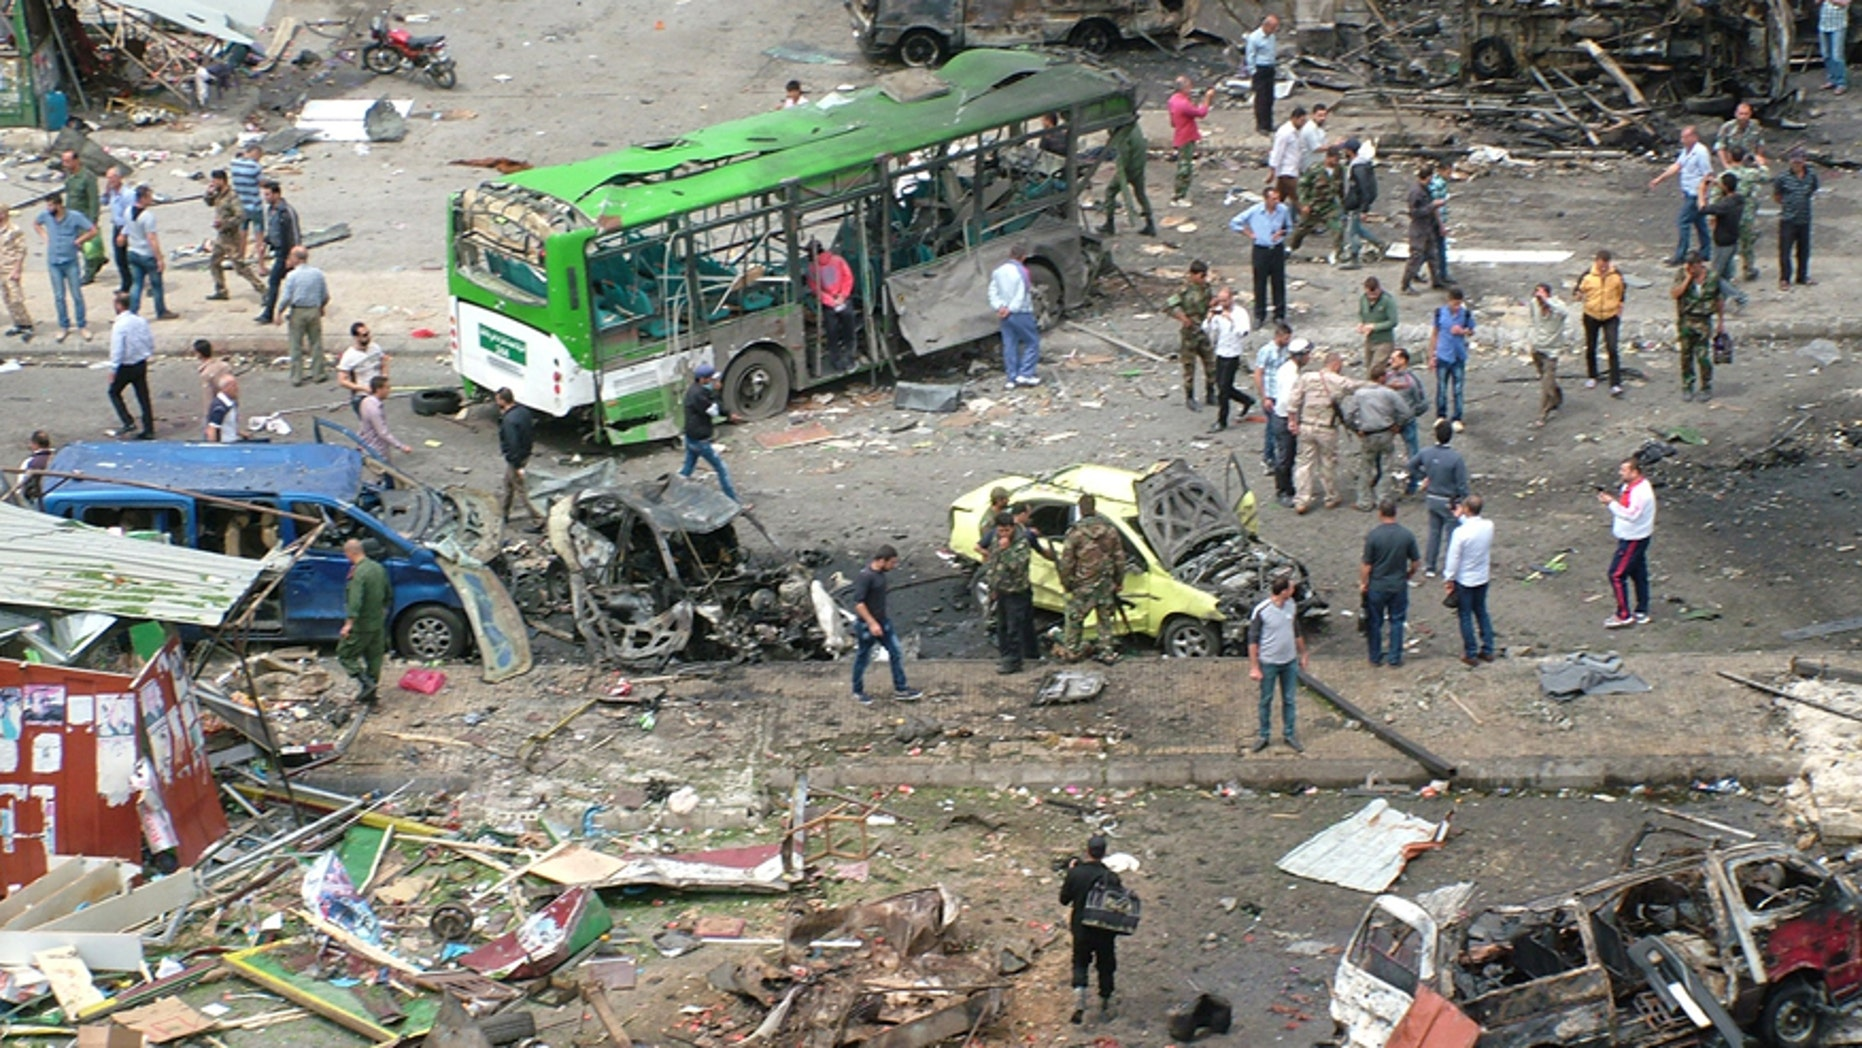 May 23, 2016: In this photo released by the Syrian official news agency SANA, Syrians inspect damages after a bombing attack at a bus station, in the coastal town of Tartus, Syria.